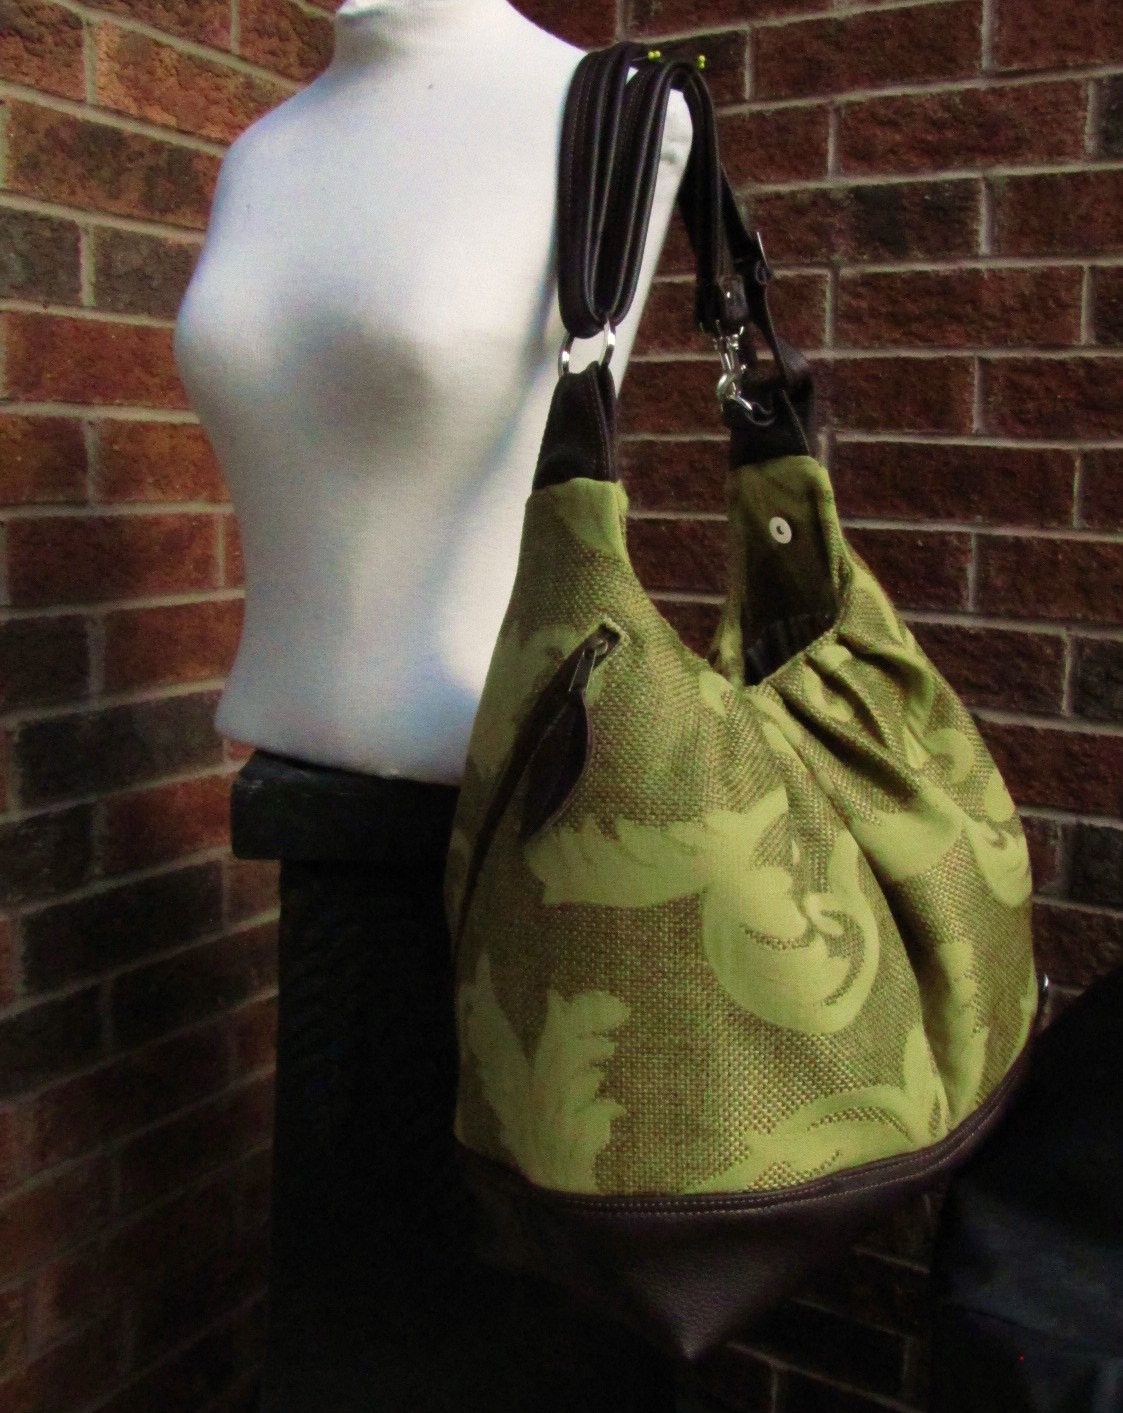 Extra Large Diaper Bag In Canvas And Leather Straps, Base